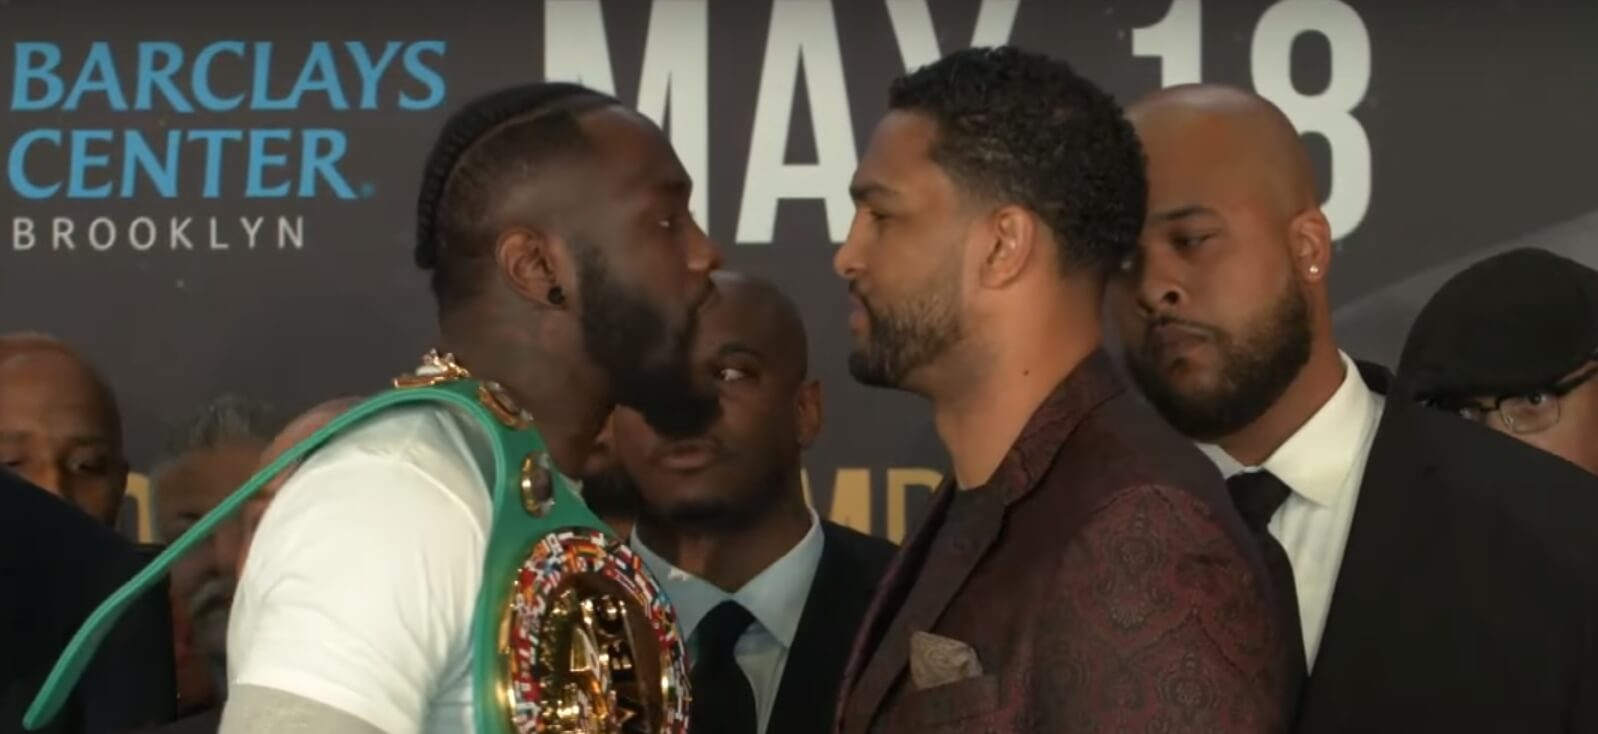 Deontay Wilder v Dominic Breazeale Preview, Betting Tips And Enhanced Odds